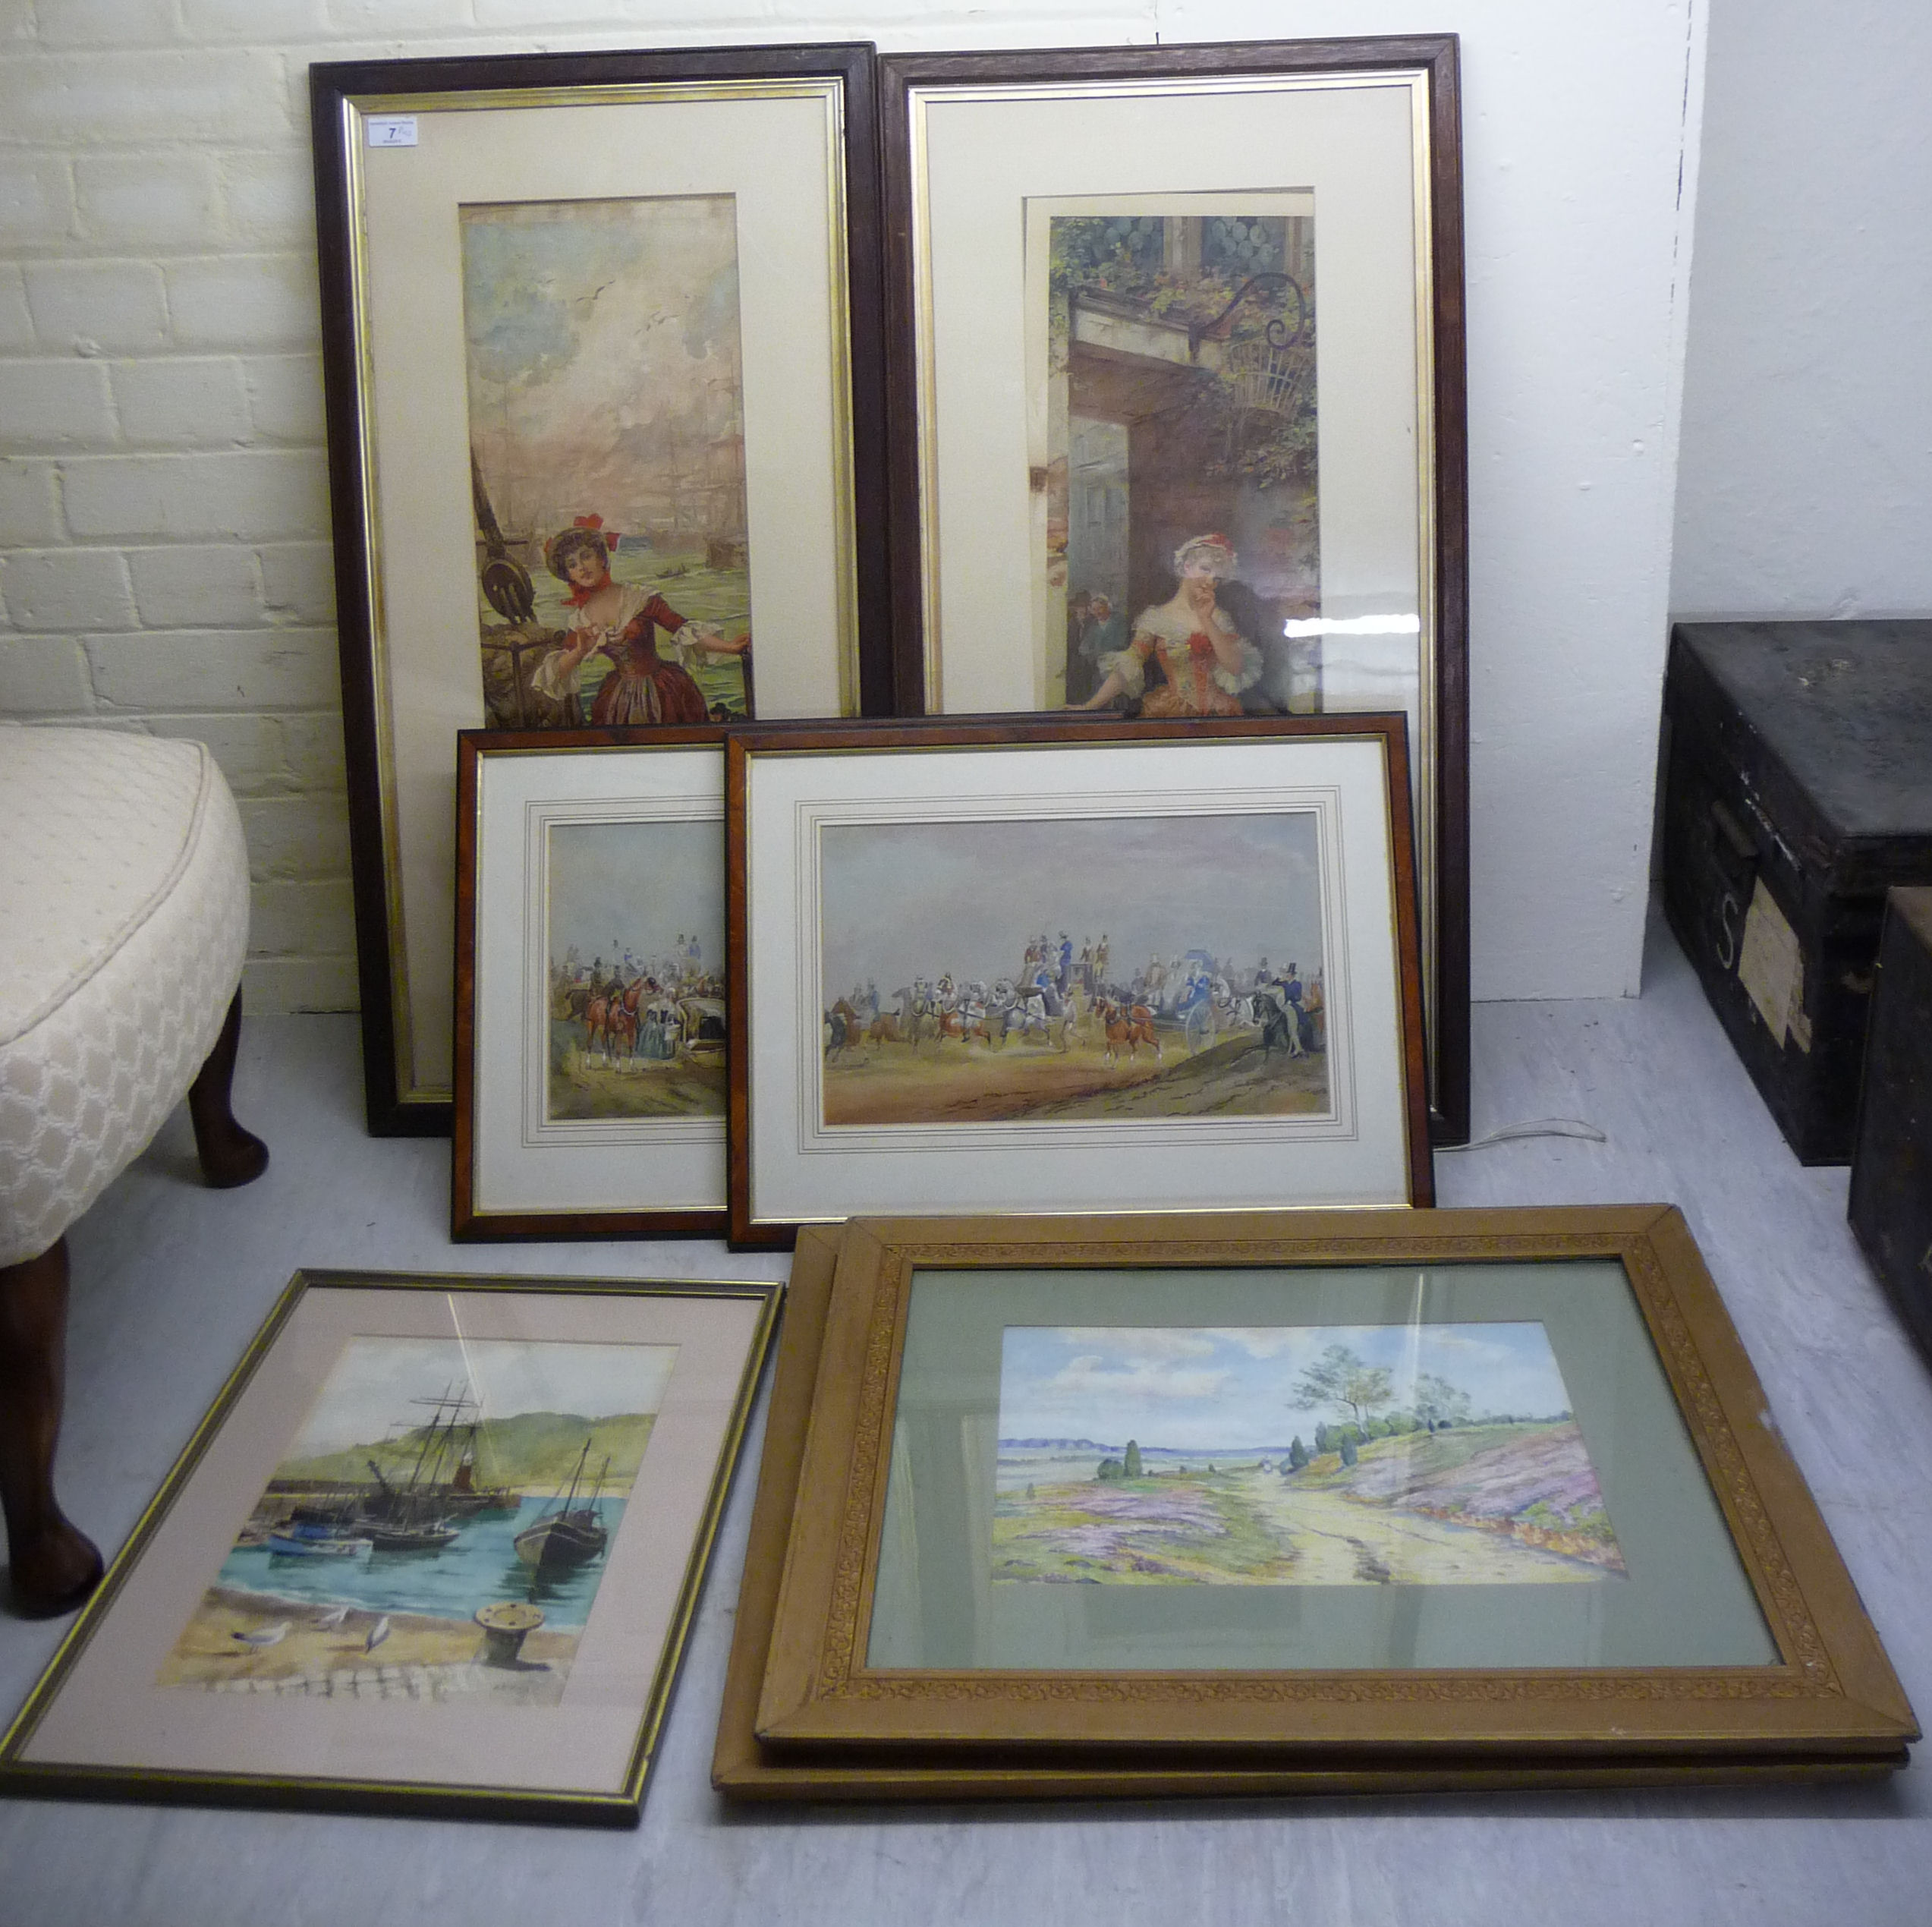 Lot 7 - Framed pictures and prints: to include JGR - a Victorian scene with horsedrawn carriages